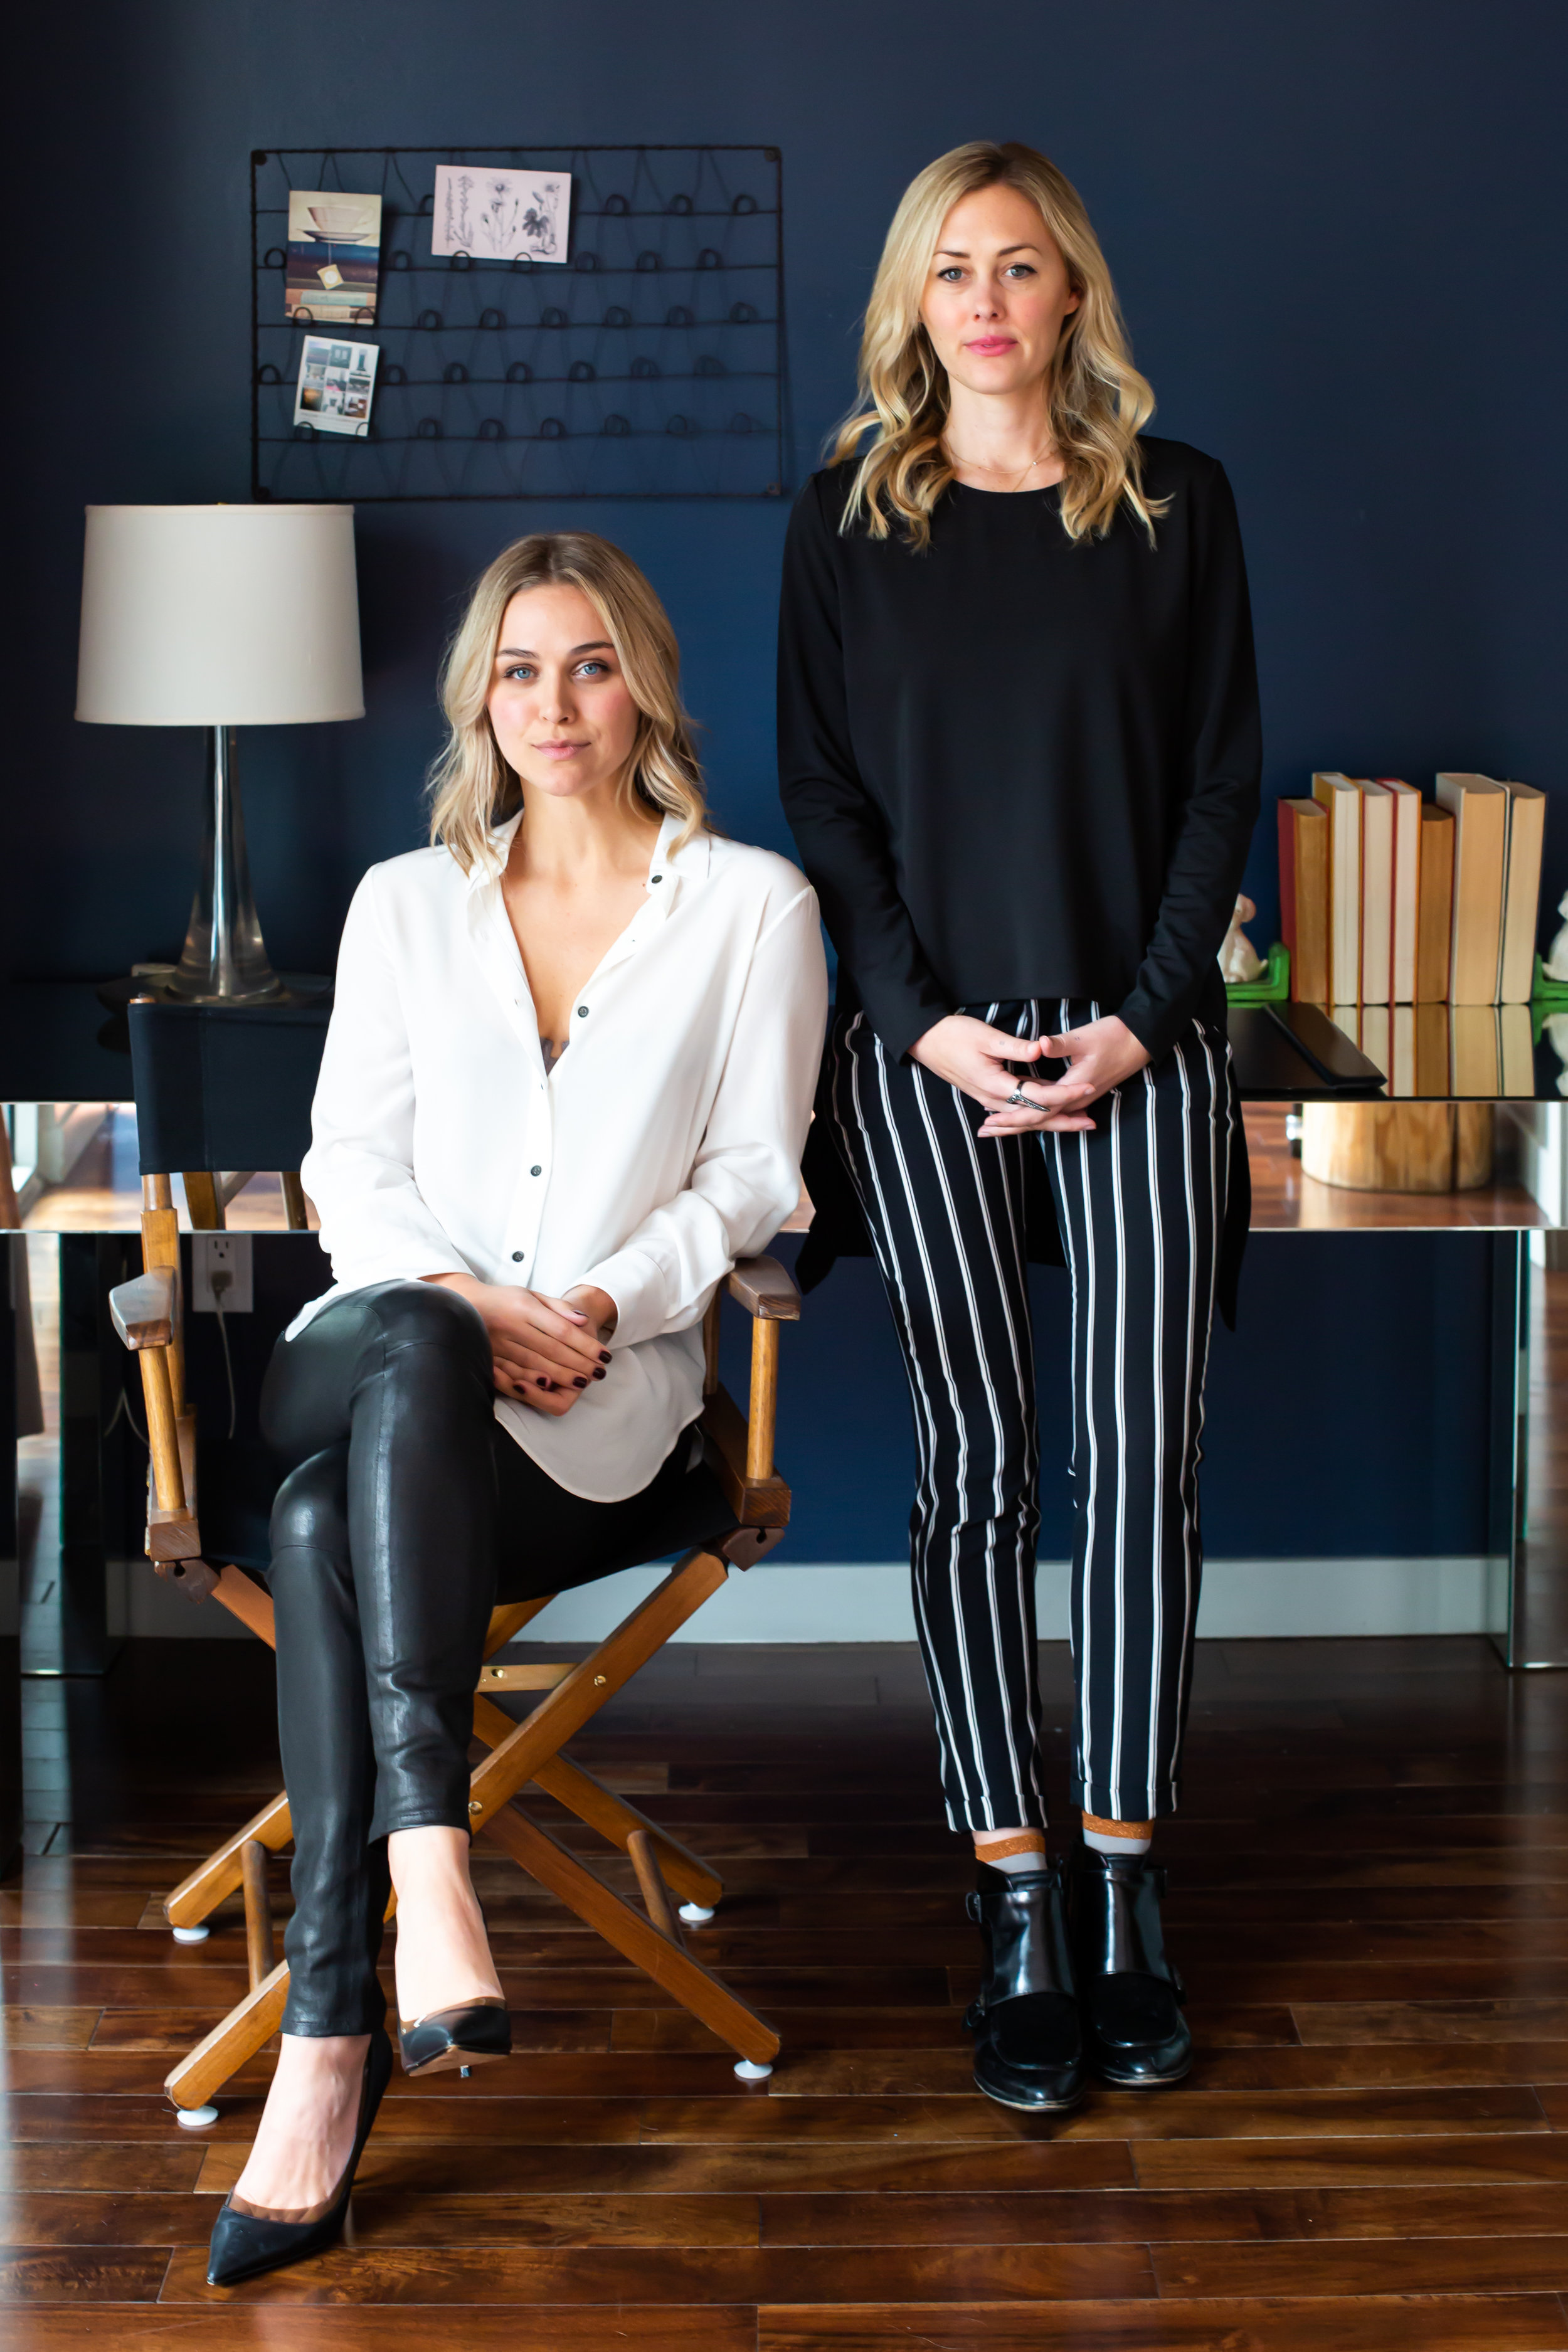 Ashley Sumner and Gianna Wurzl Co-Founders of Quilt